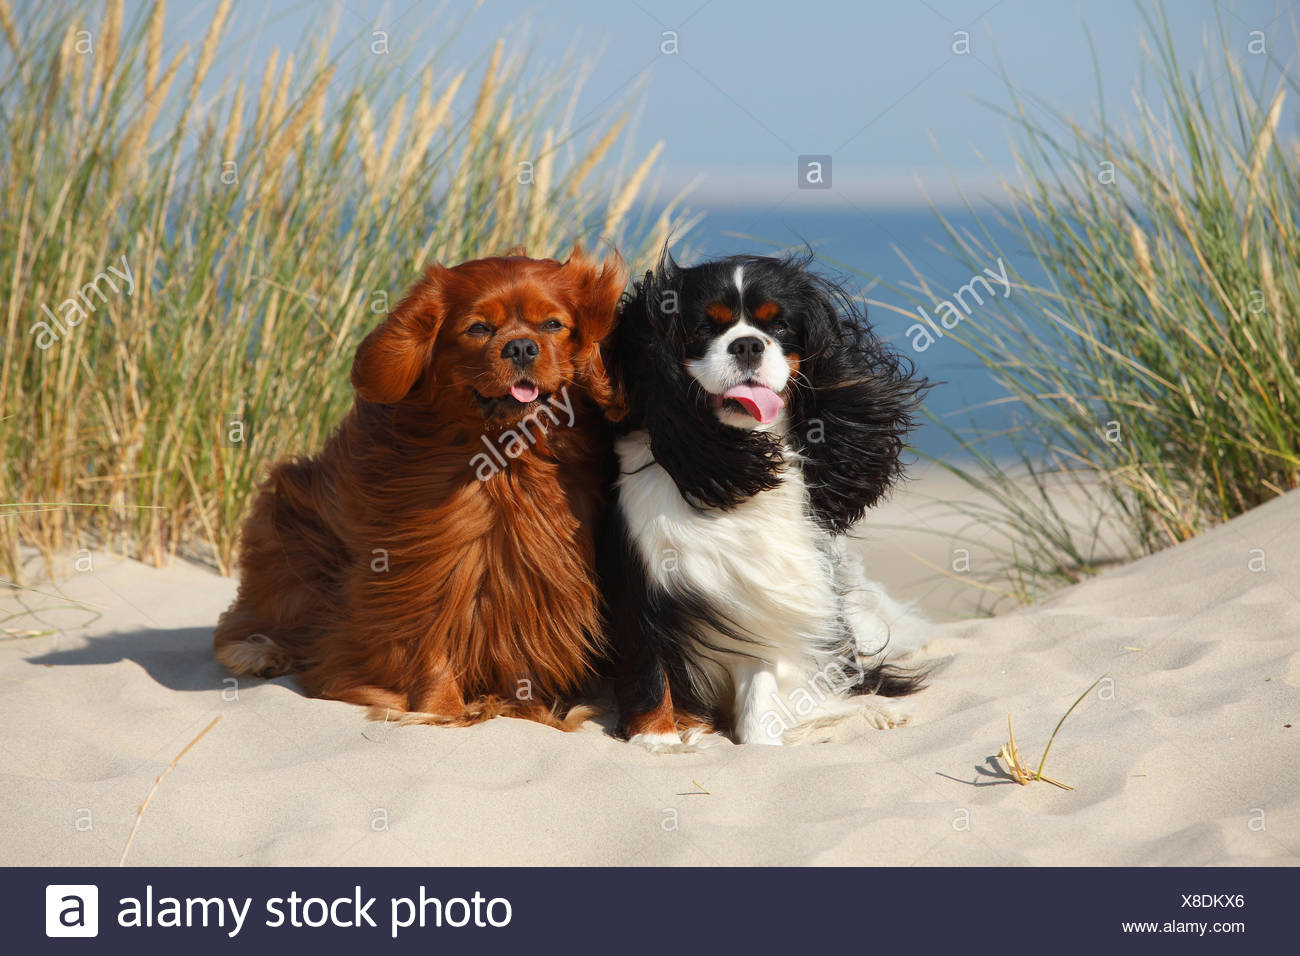 Cavalier King Charles Spaniels with tricolor and ruby colourations on beach, Texel, Netherlands - Stock Image